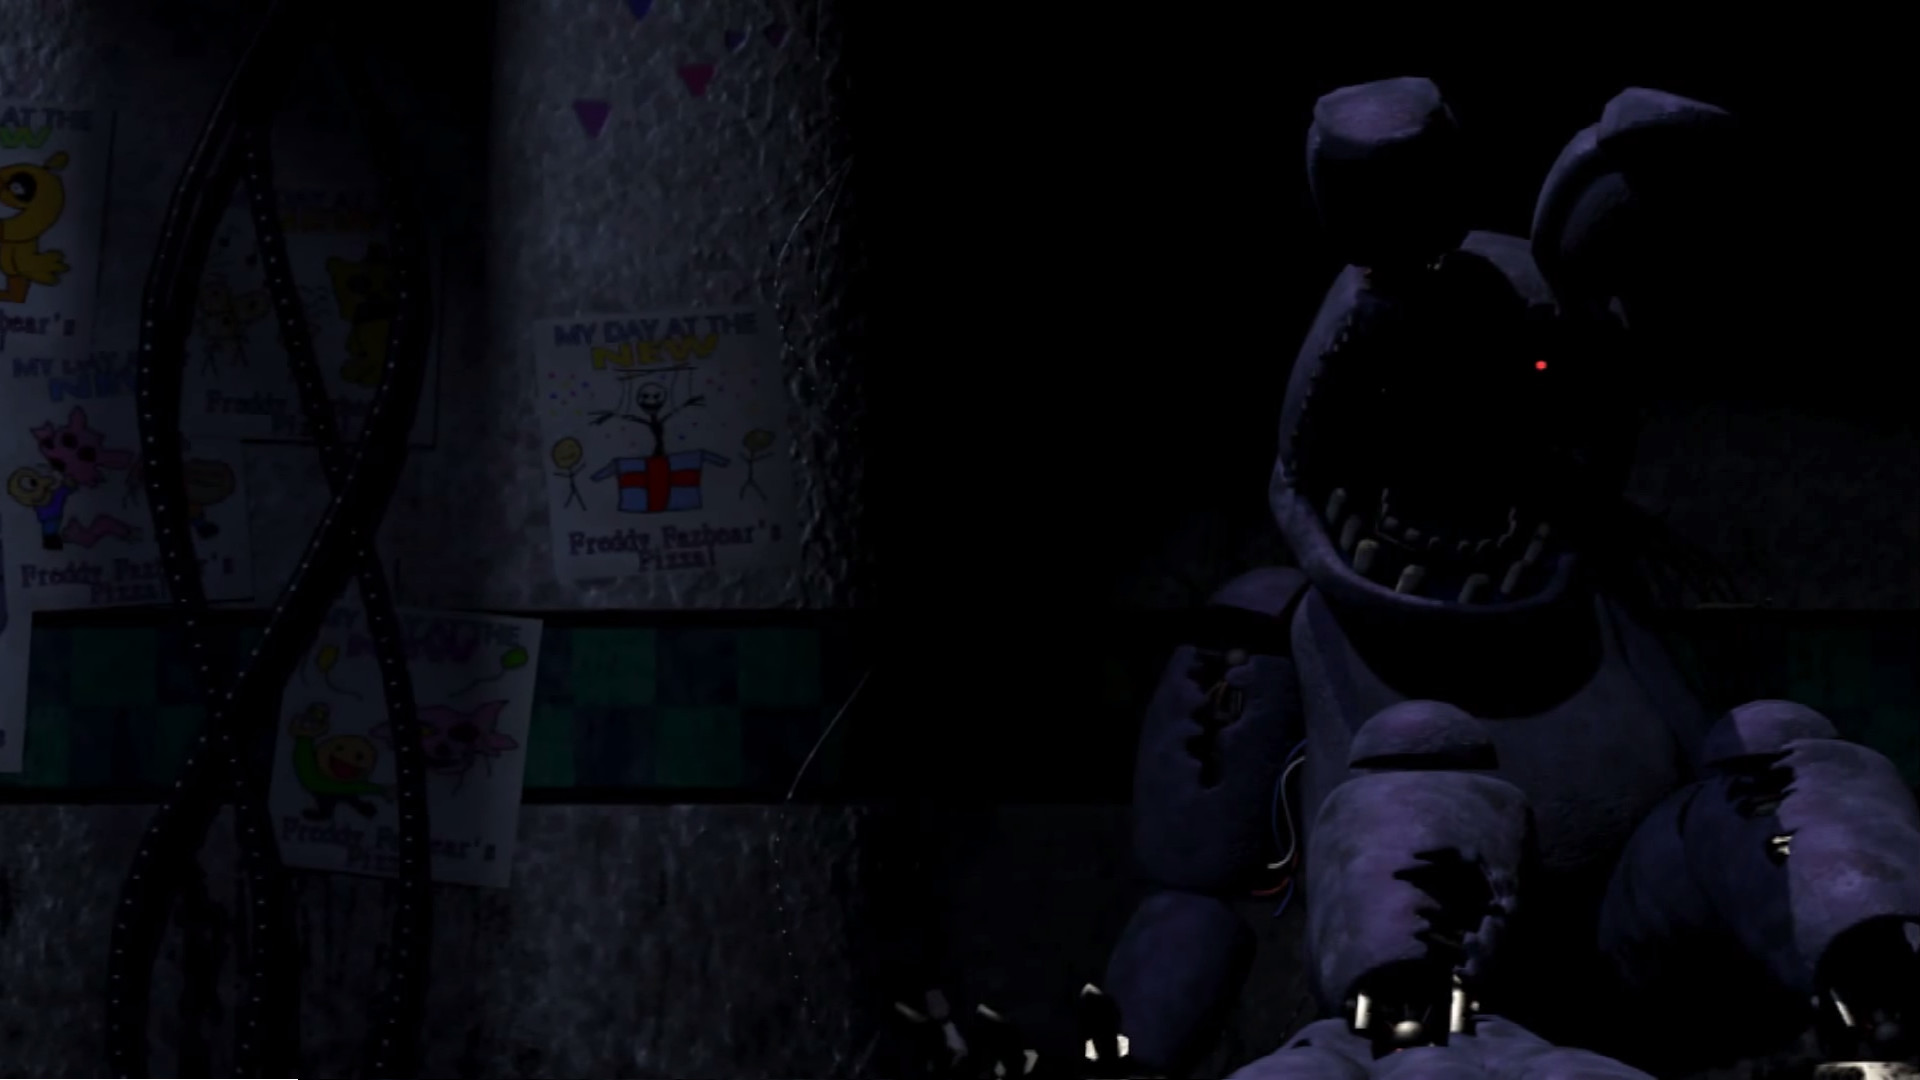 1920x1080 FNAF 4 Desktop Wallpaper, High Quality FNAF 4 Backgrounds .